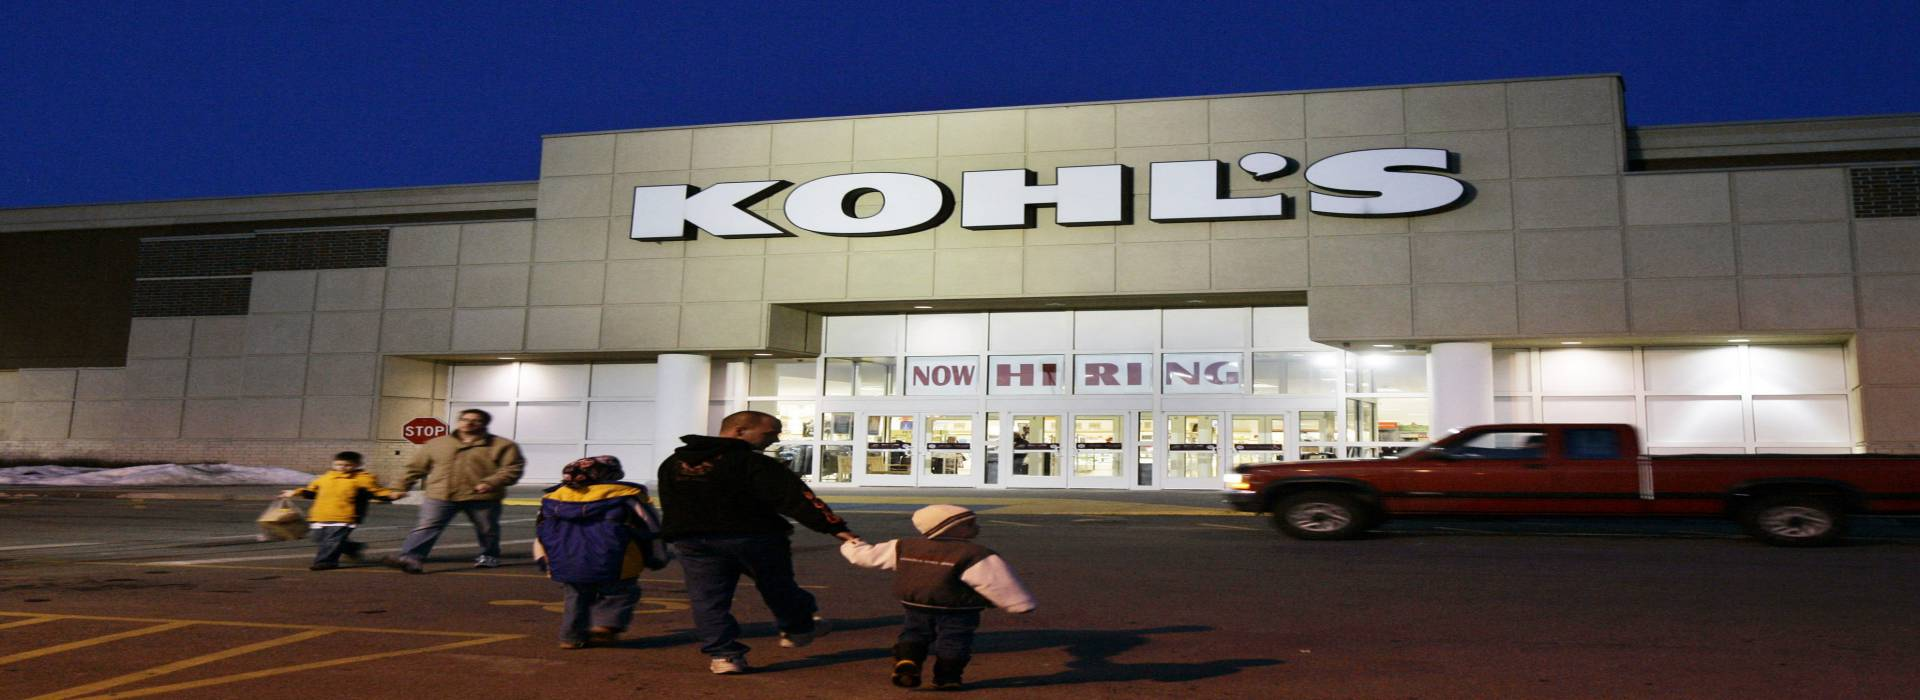 Kohl's Customer Service Number, Corporate Office Address, Taoll ...